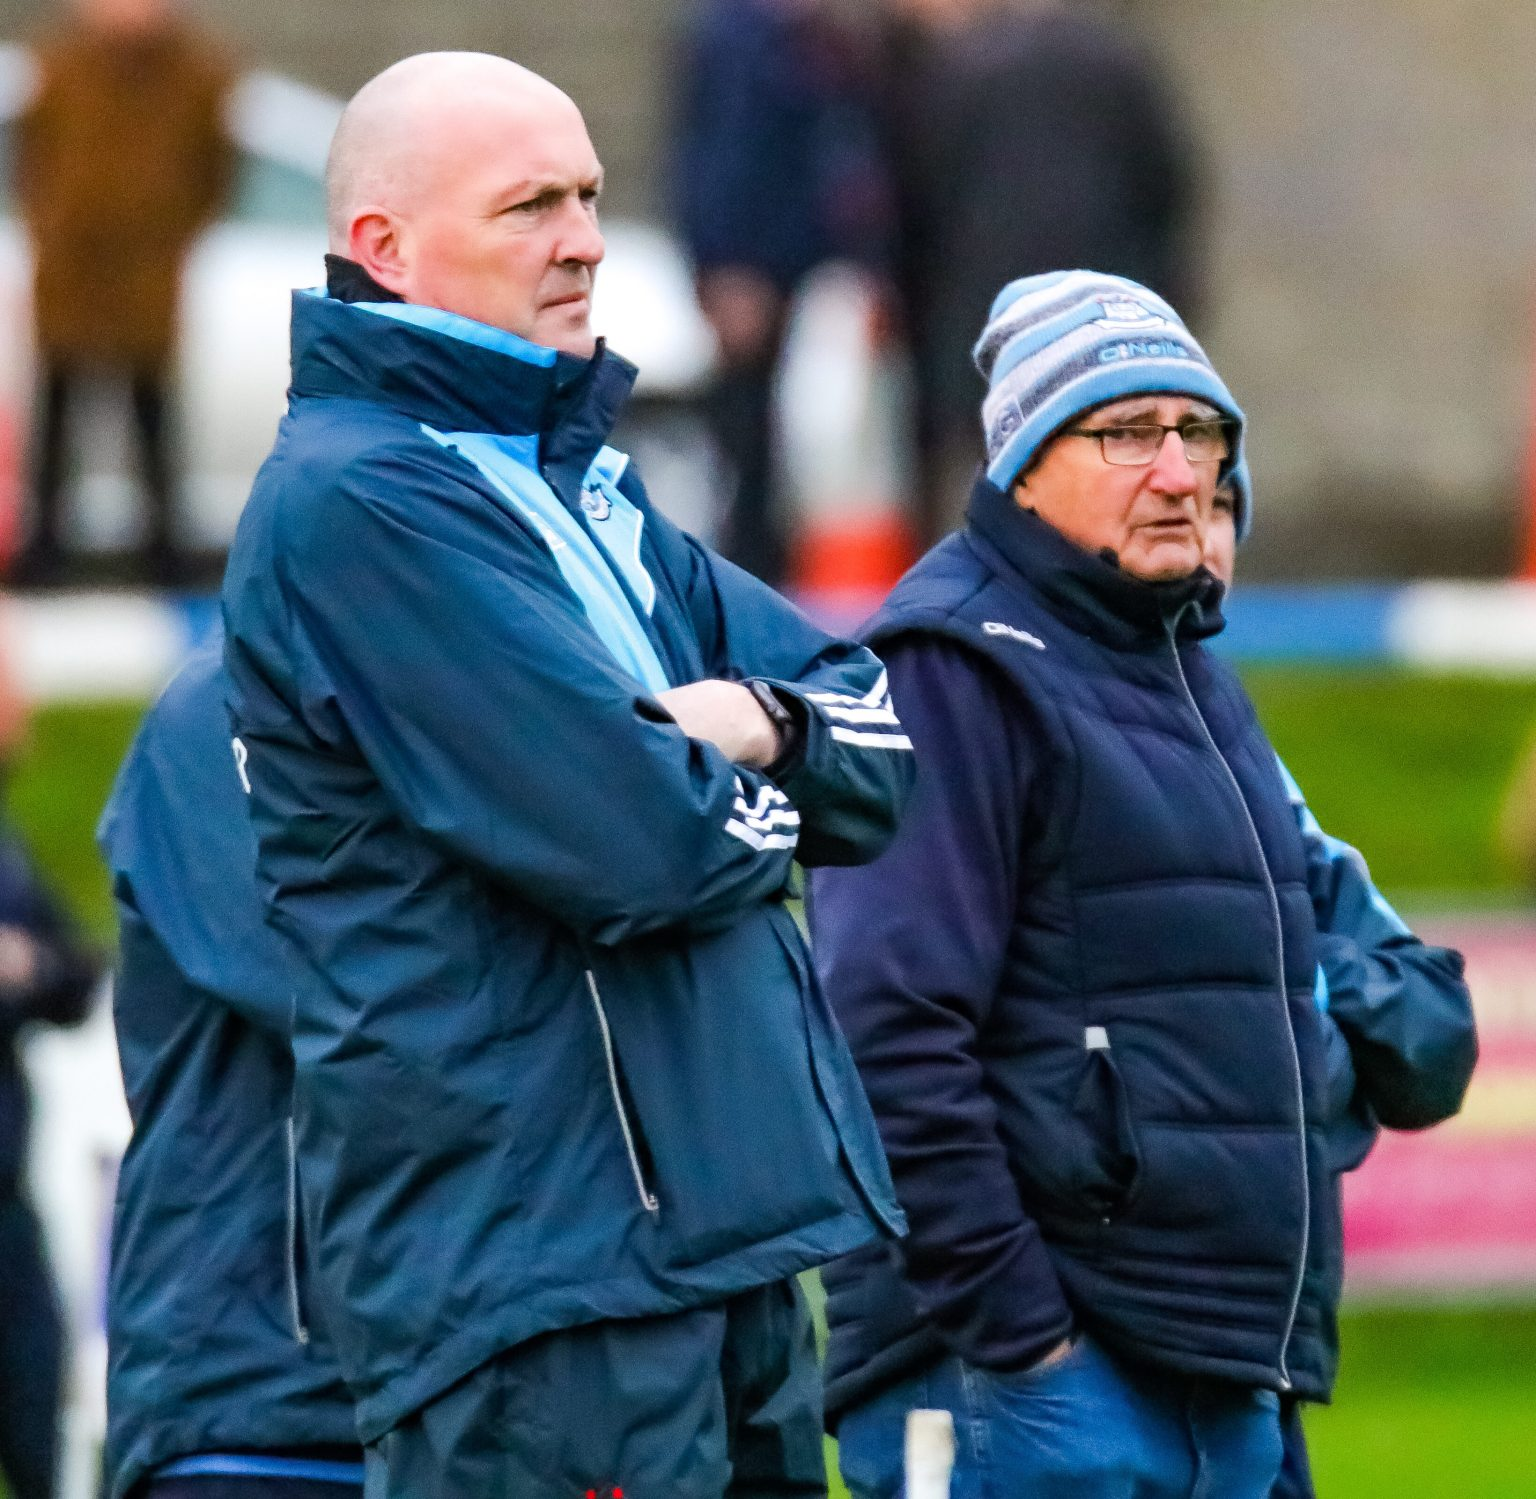 Dublin Senior Hurling Manager Pat Gilroy